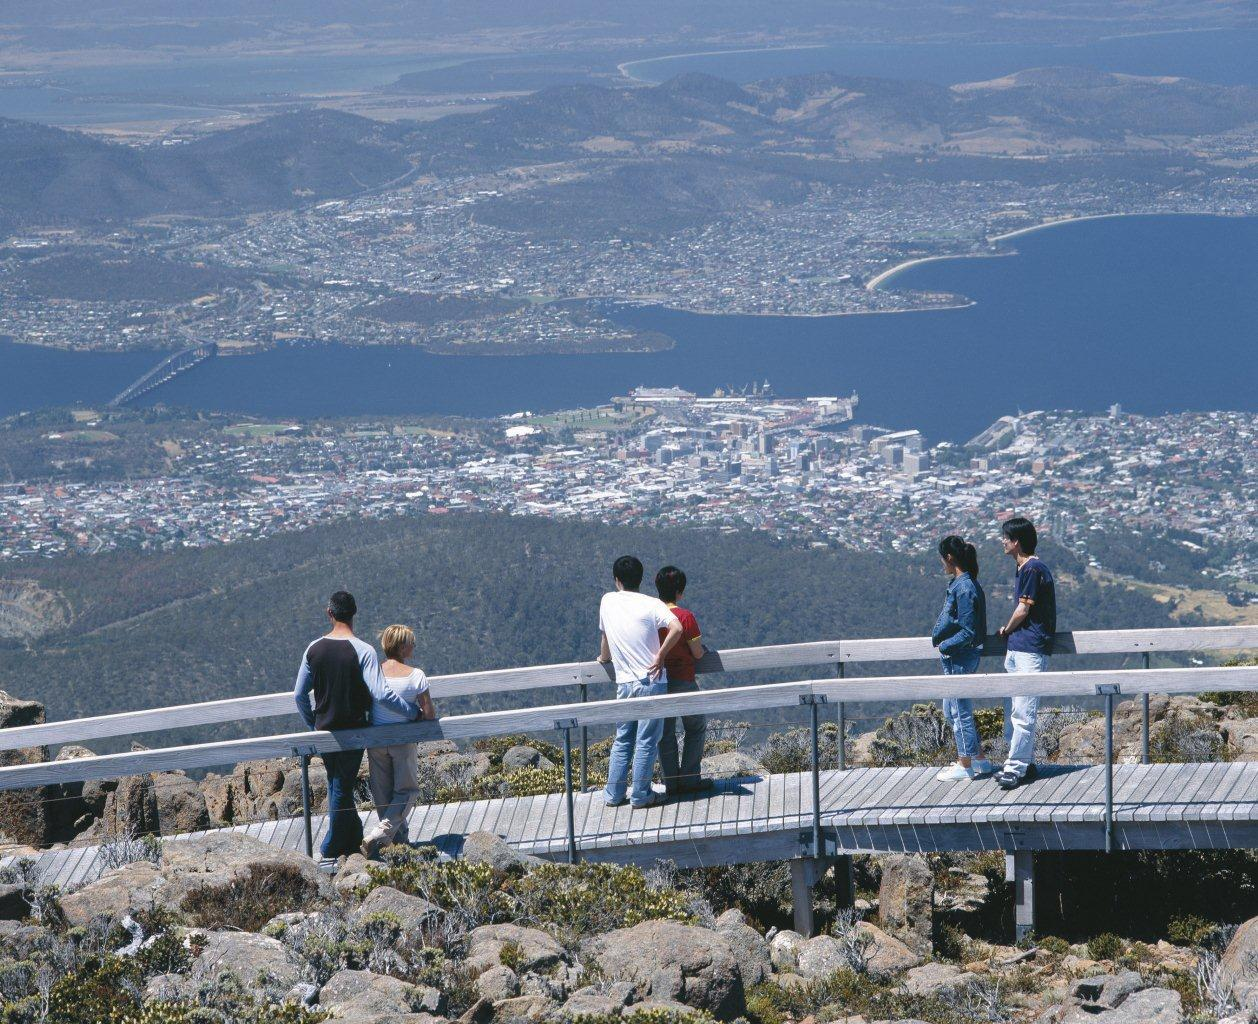 Some thoughts on what to do for a weekend trip to tasmania a weekend trip to tasmania solutioingenieria Image collections